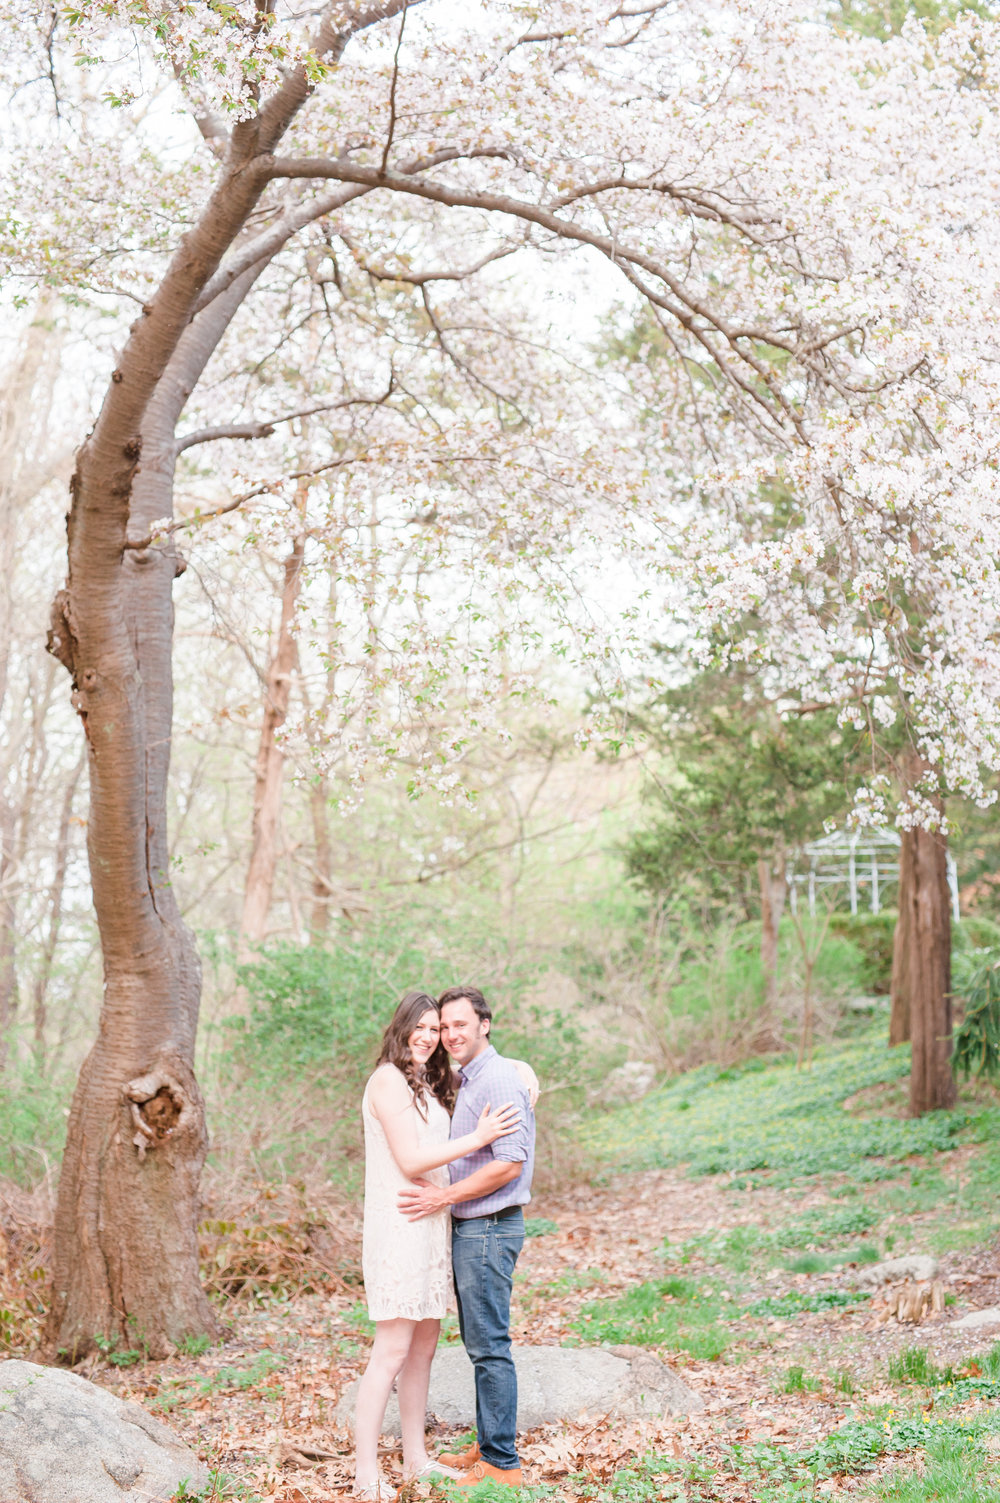 Sean and Nicole Beverly spring blossom engagement-4.jpg